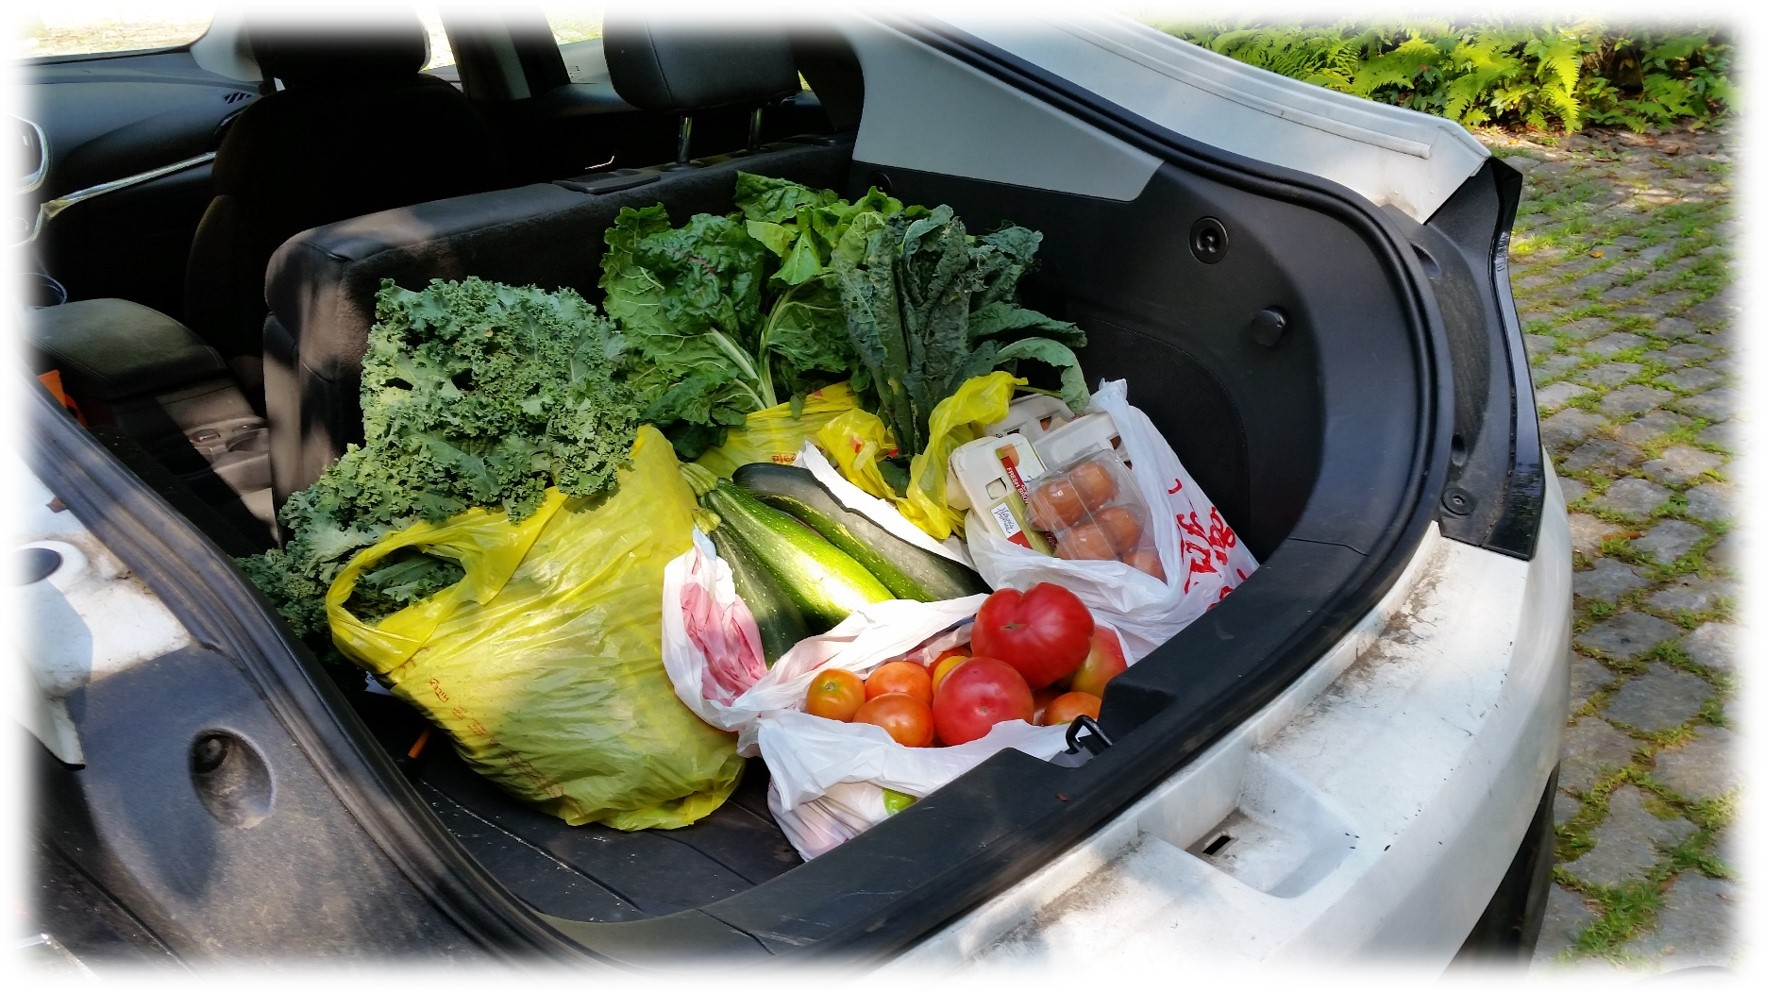 Trunk filled with garden veggies